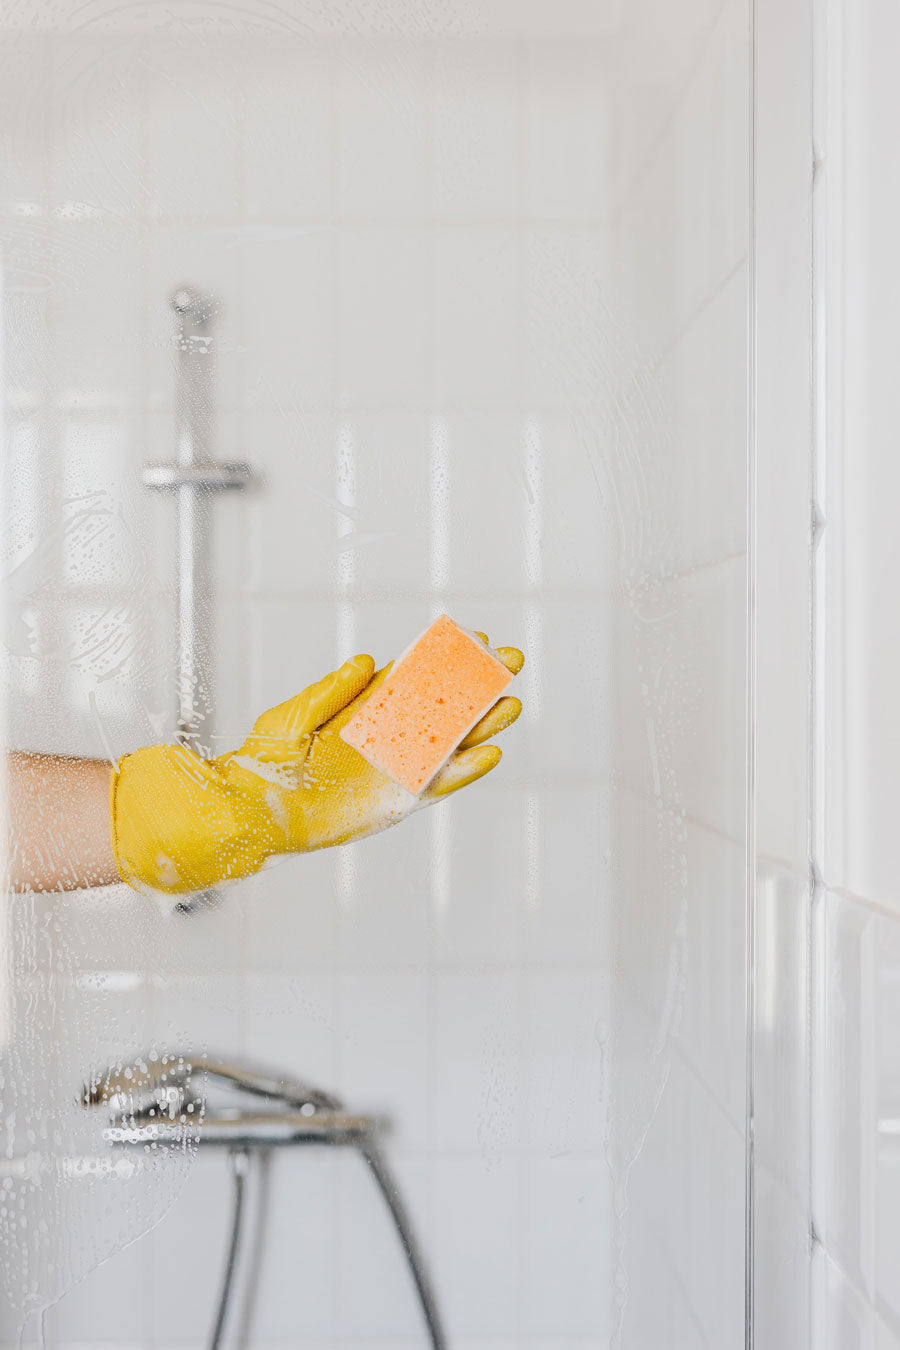 The Most Effective Methods for Removing Stains from  Marble Shower Tiles